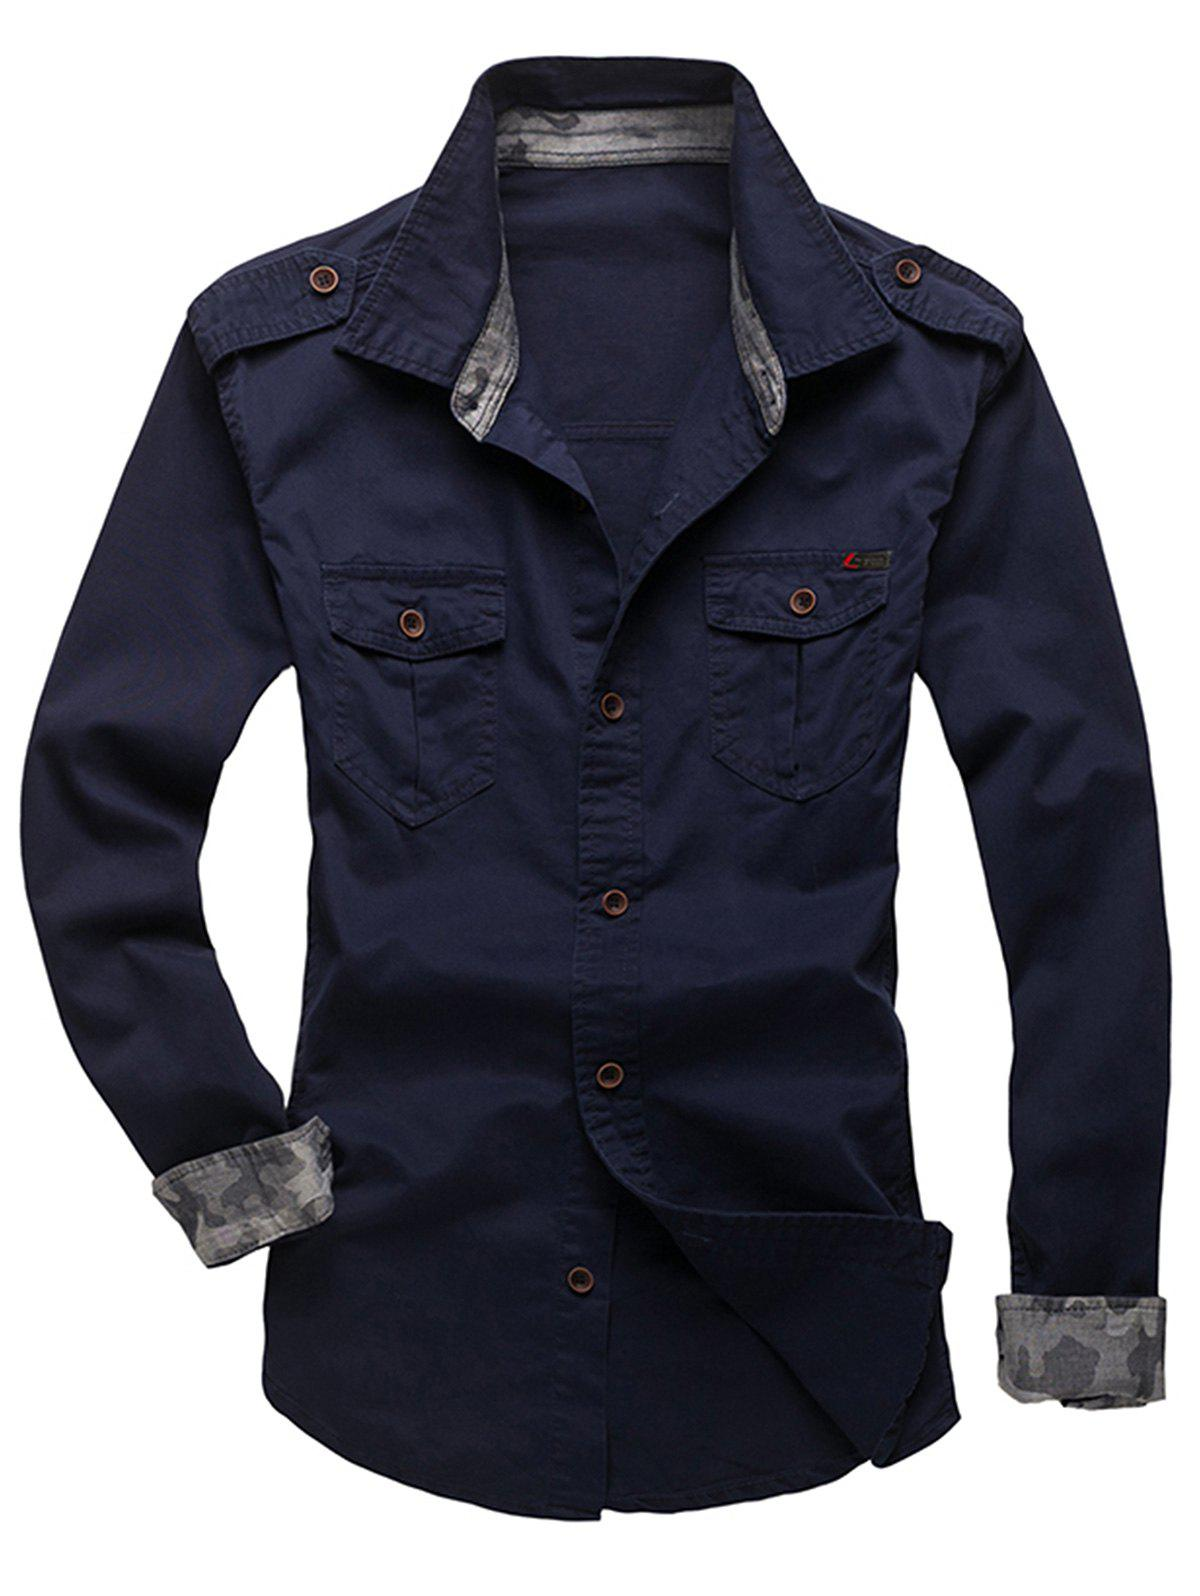 Chic Epaulet Design Fatigue Shirt